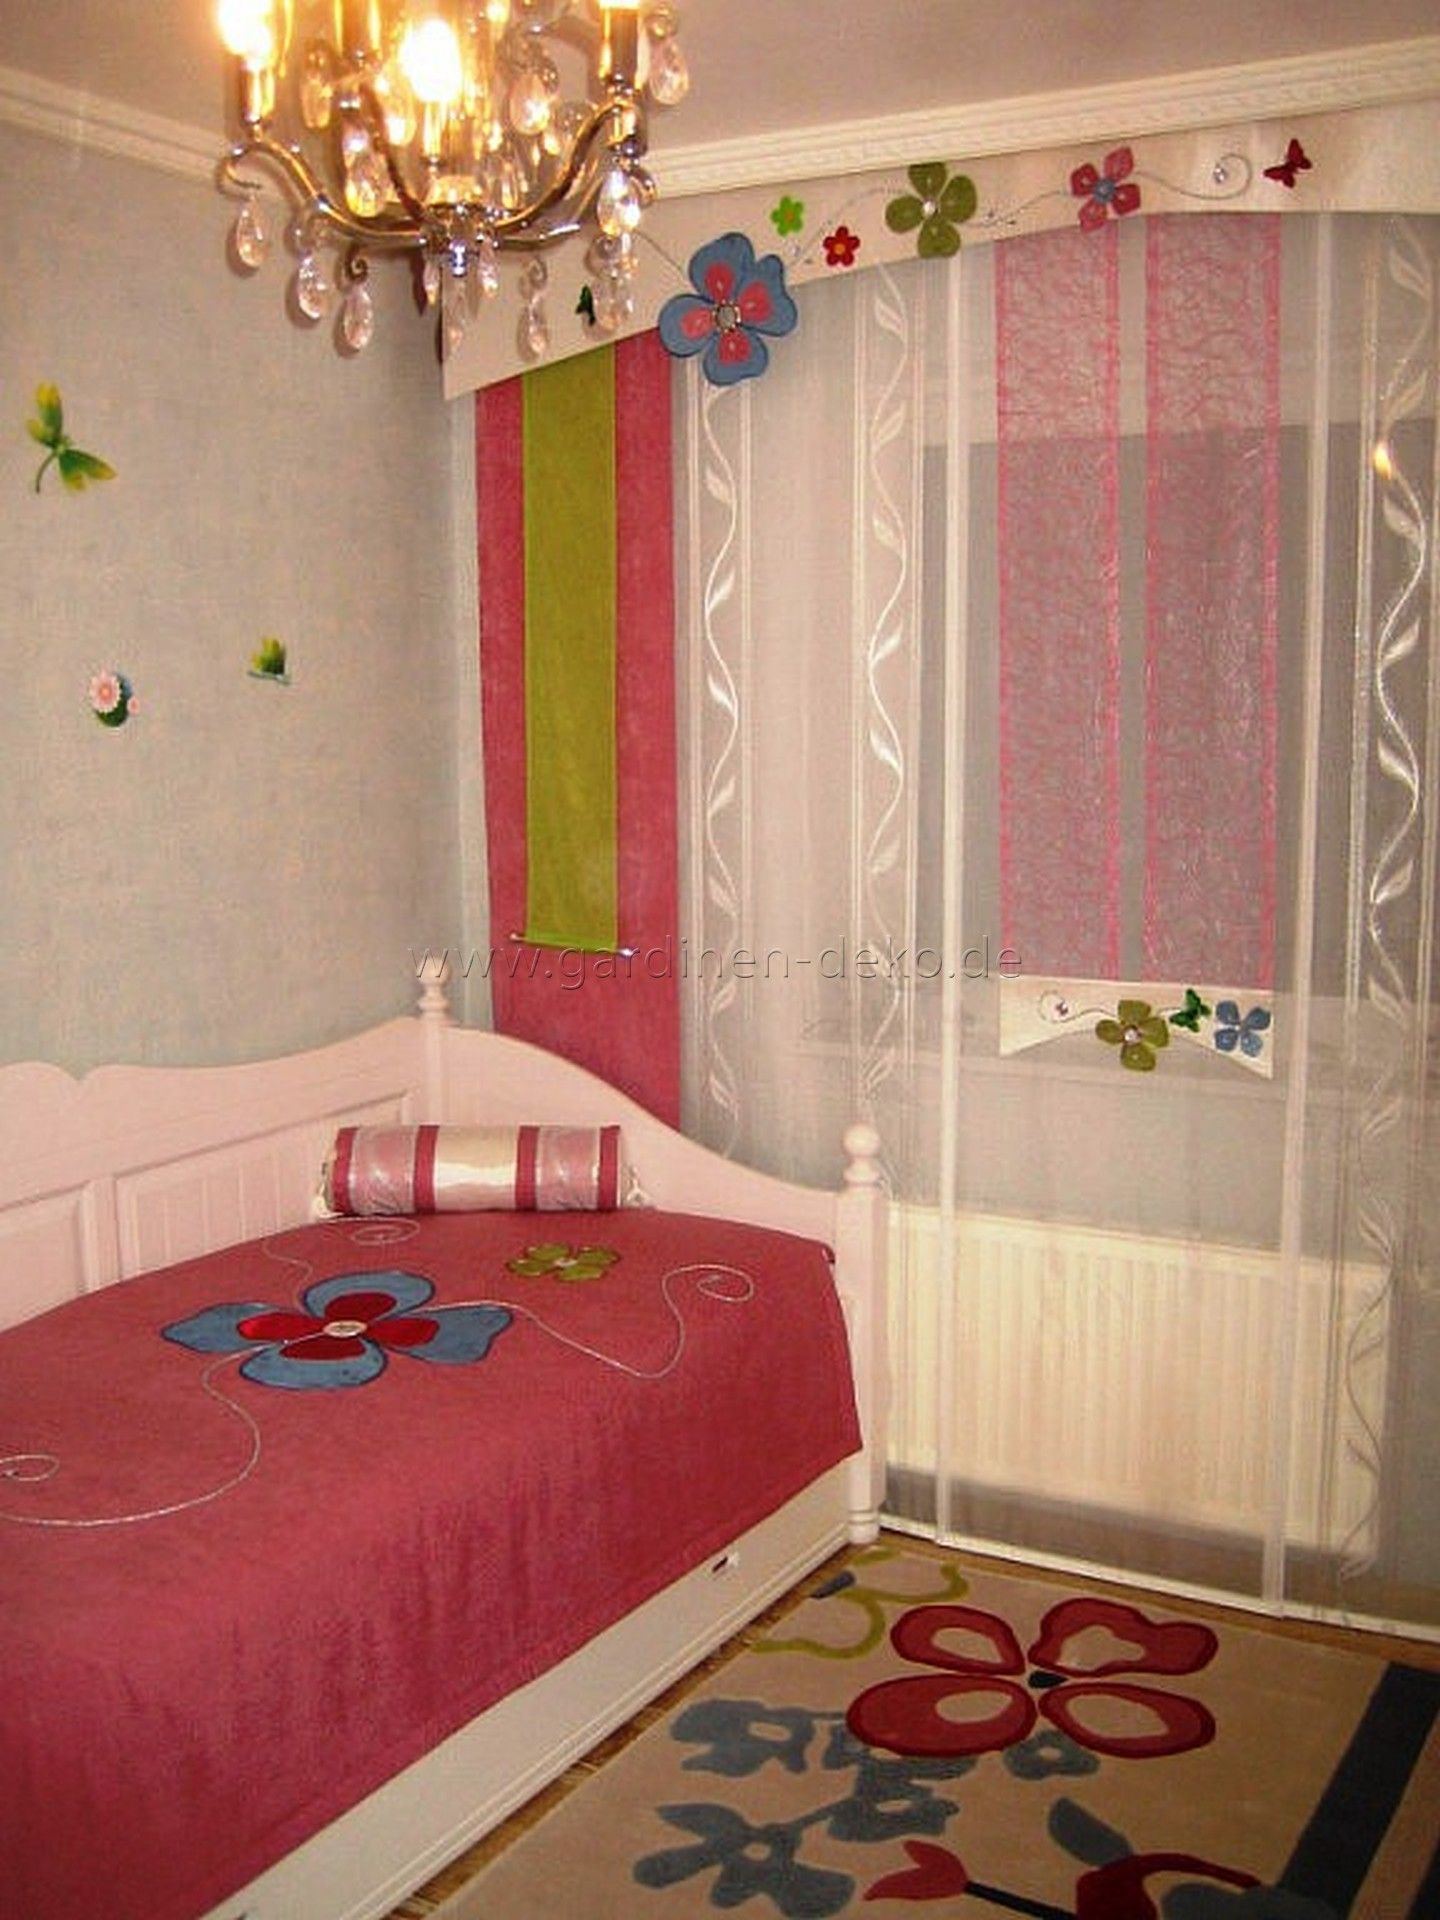 kinderzimmer schiebegardine mit blumenschabracke und schal in pink gr n. Black Bedroom Furniture Sets. Home Design Ideas